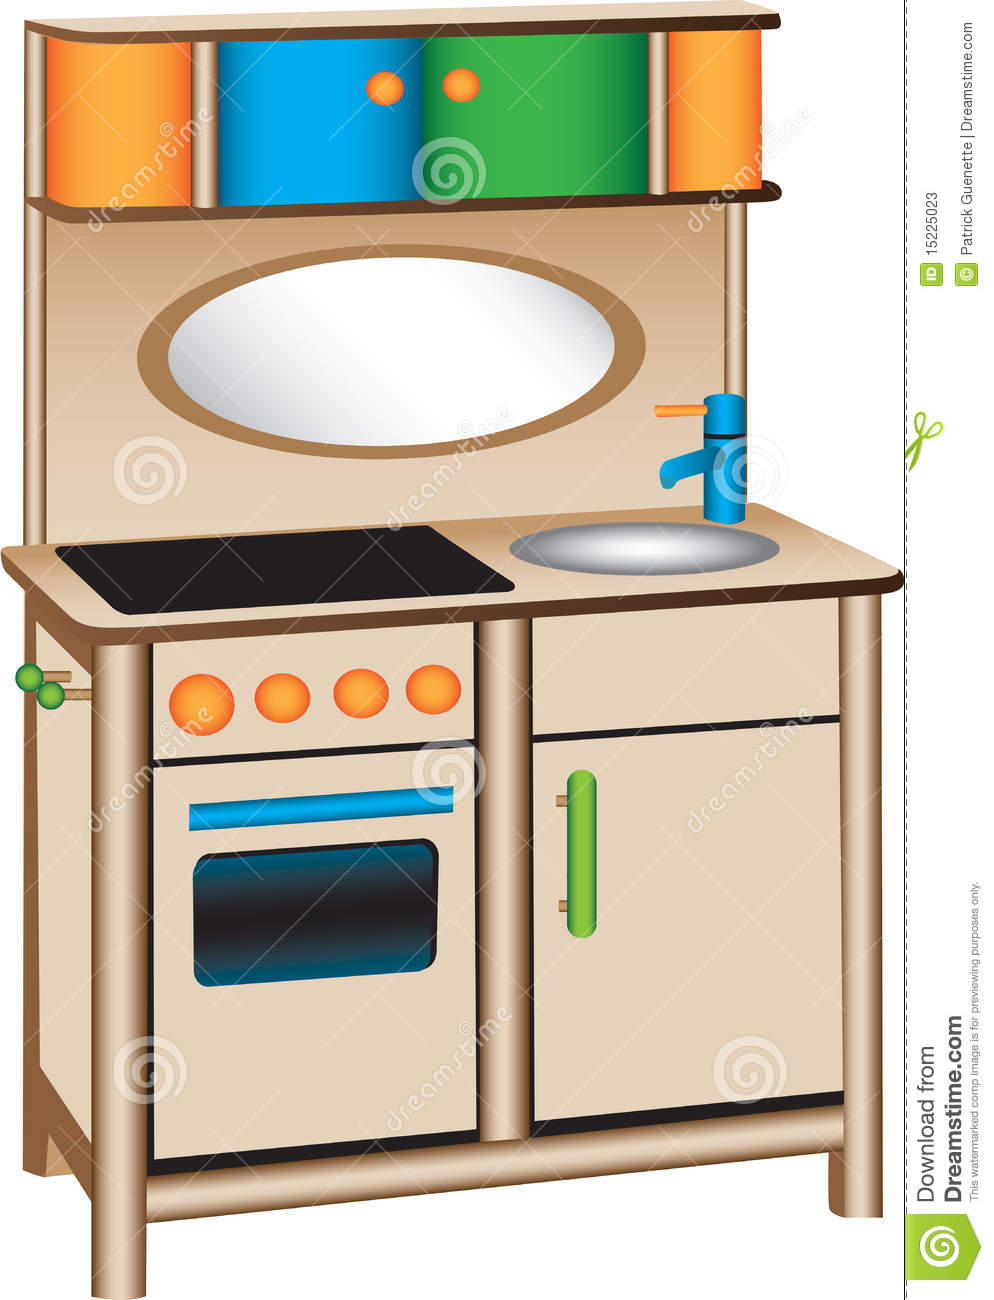 Toy Kitchen Clipart.